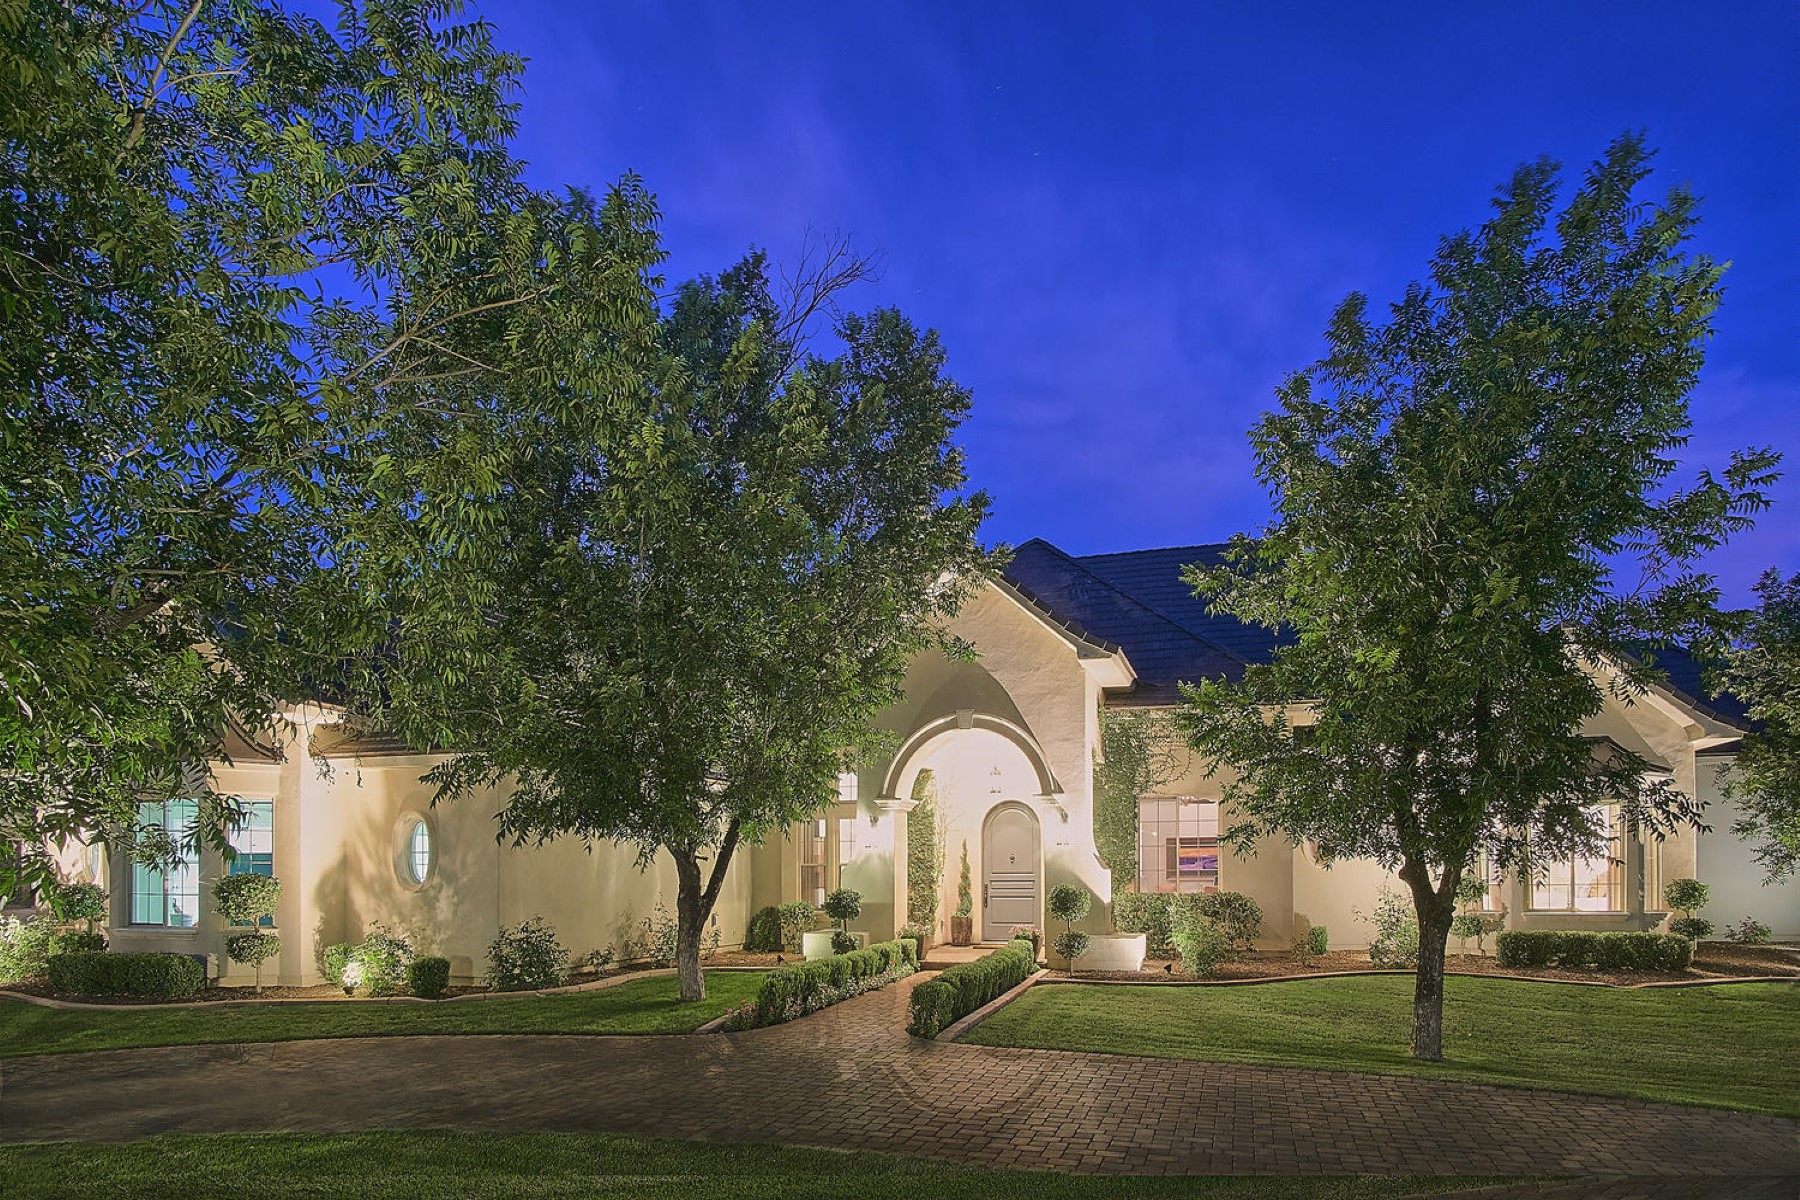 Single Family Home for Sale at Beautiful single level home in the exclusive gated community of The Pecans 20651 E Sunrise Ct, Queen Creek, Arizona, 85142 United States